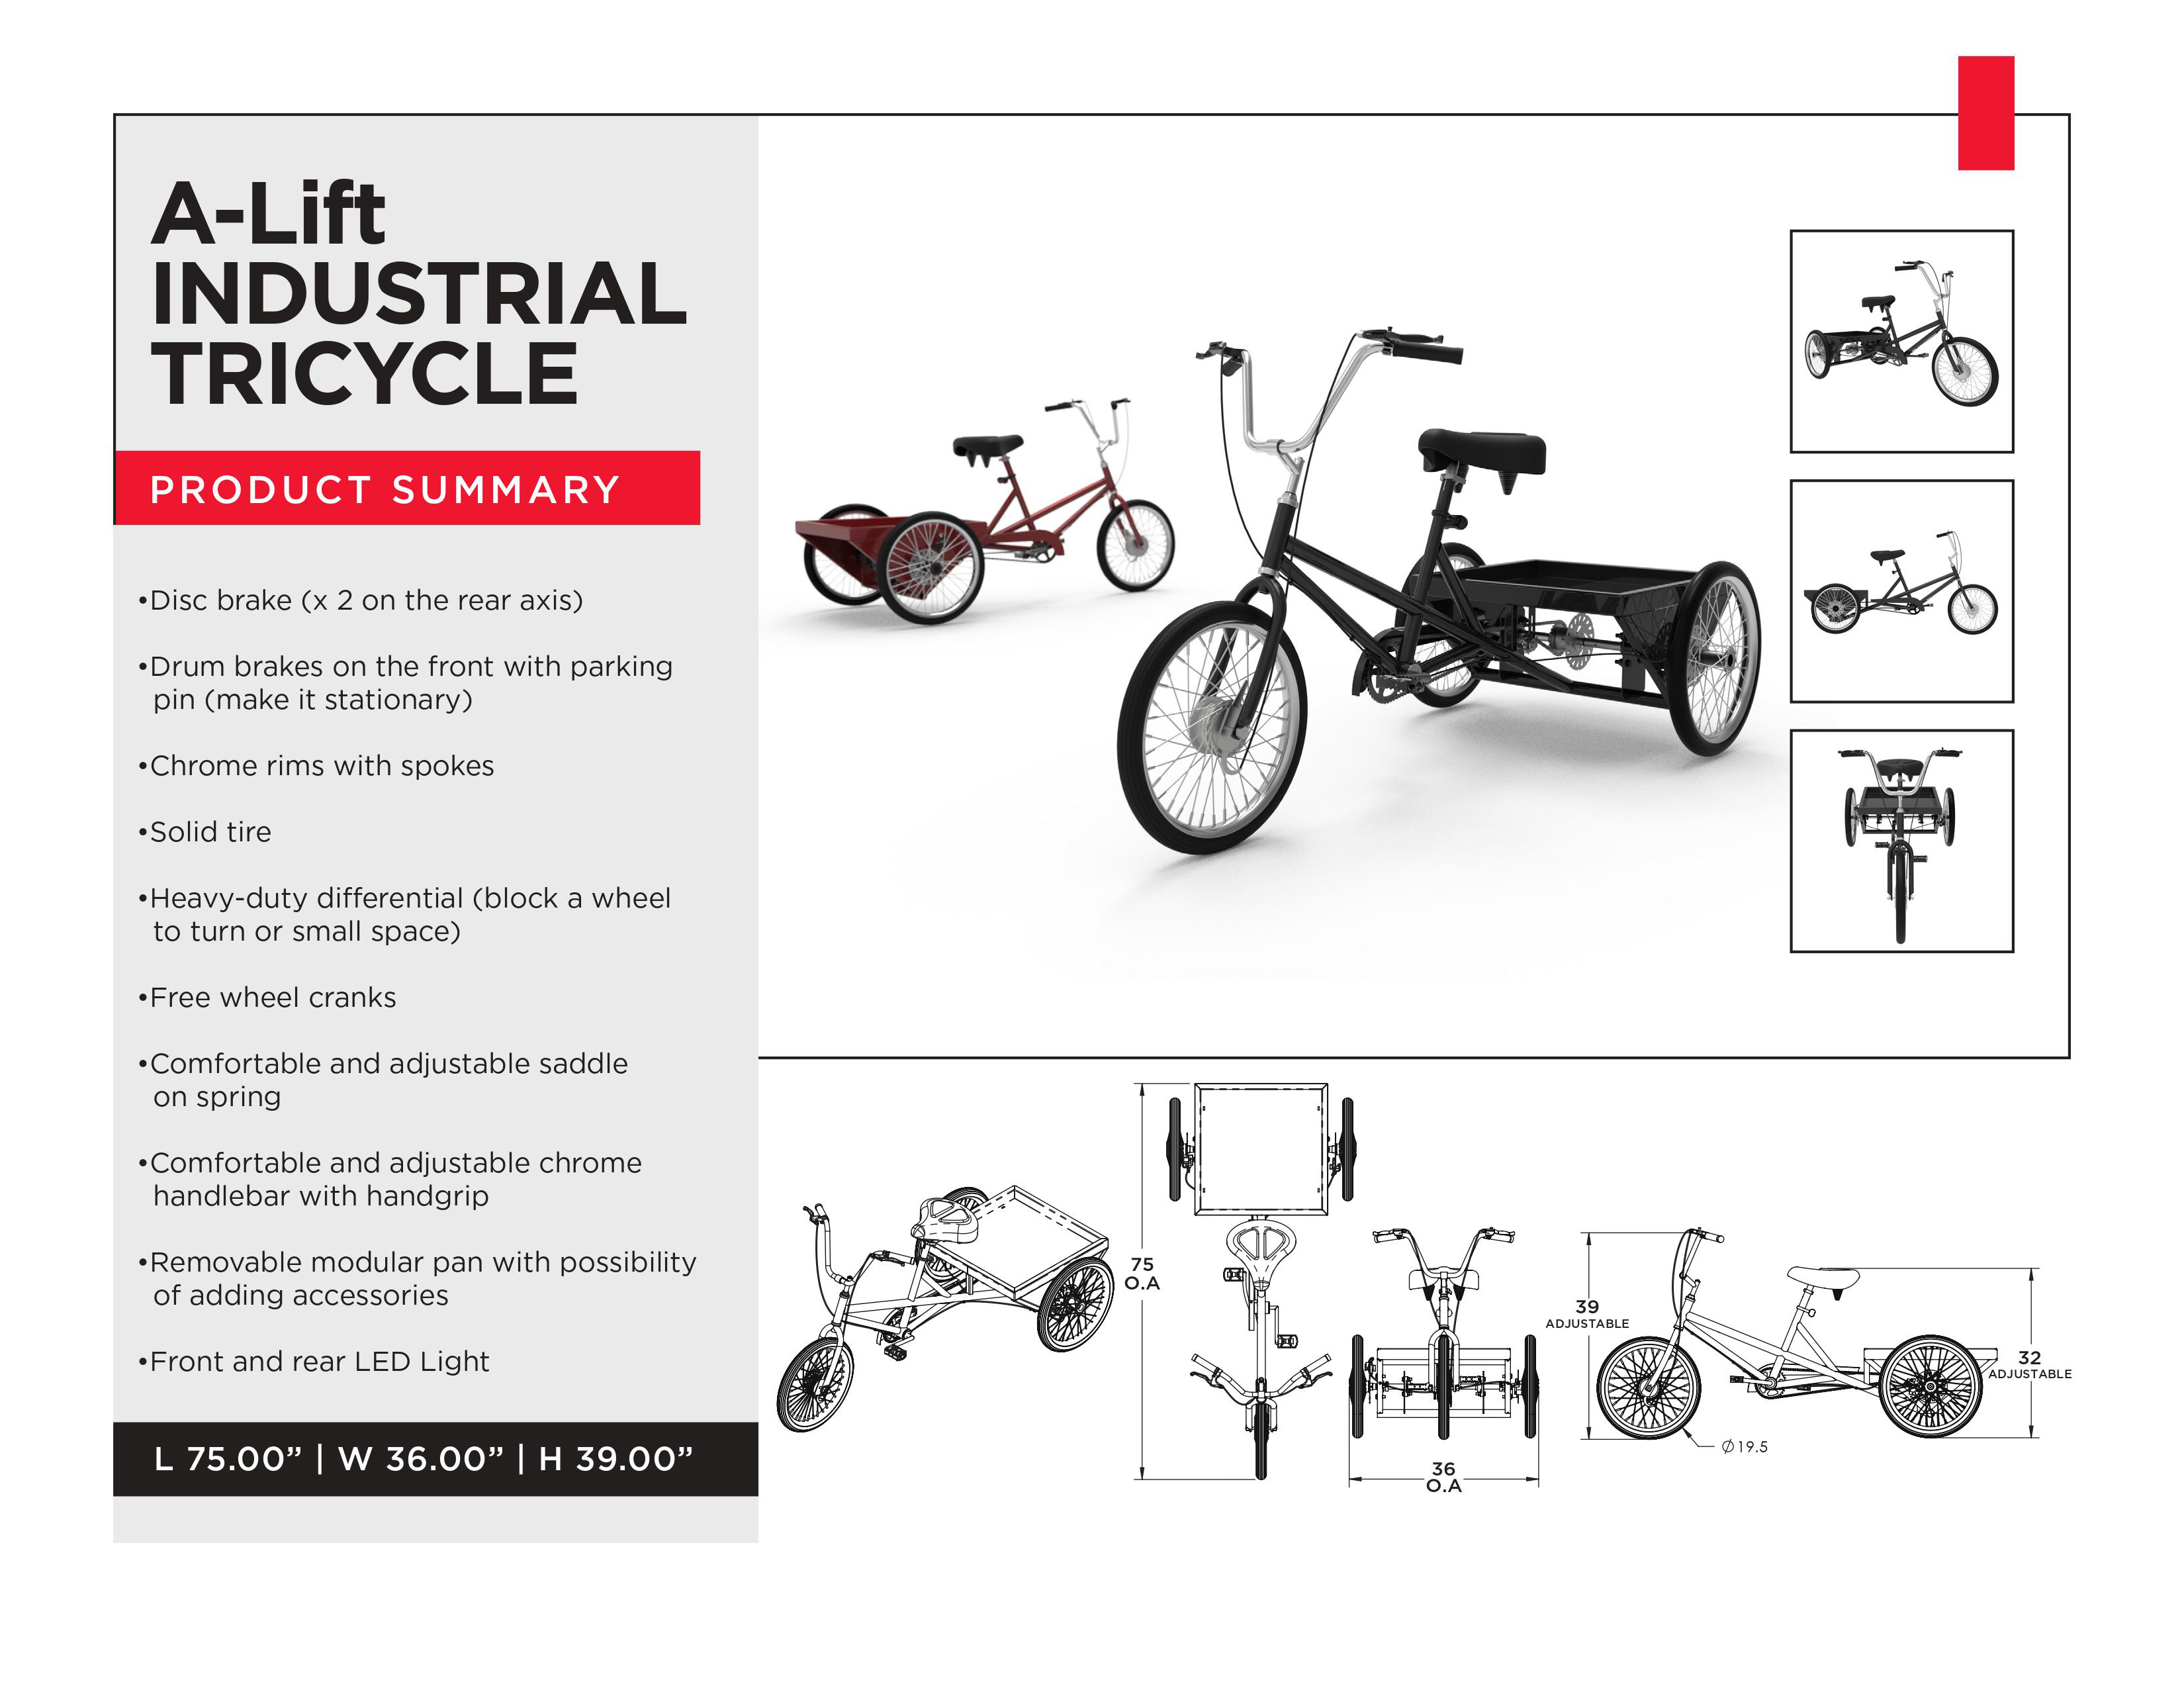 A-Lift Material Handling Tricycle for Warehouse